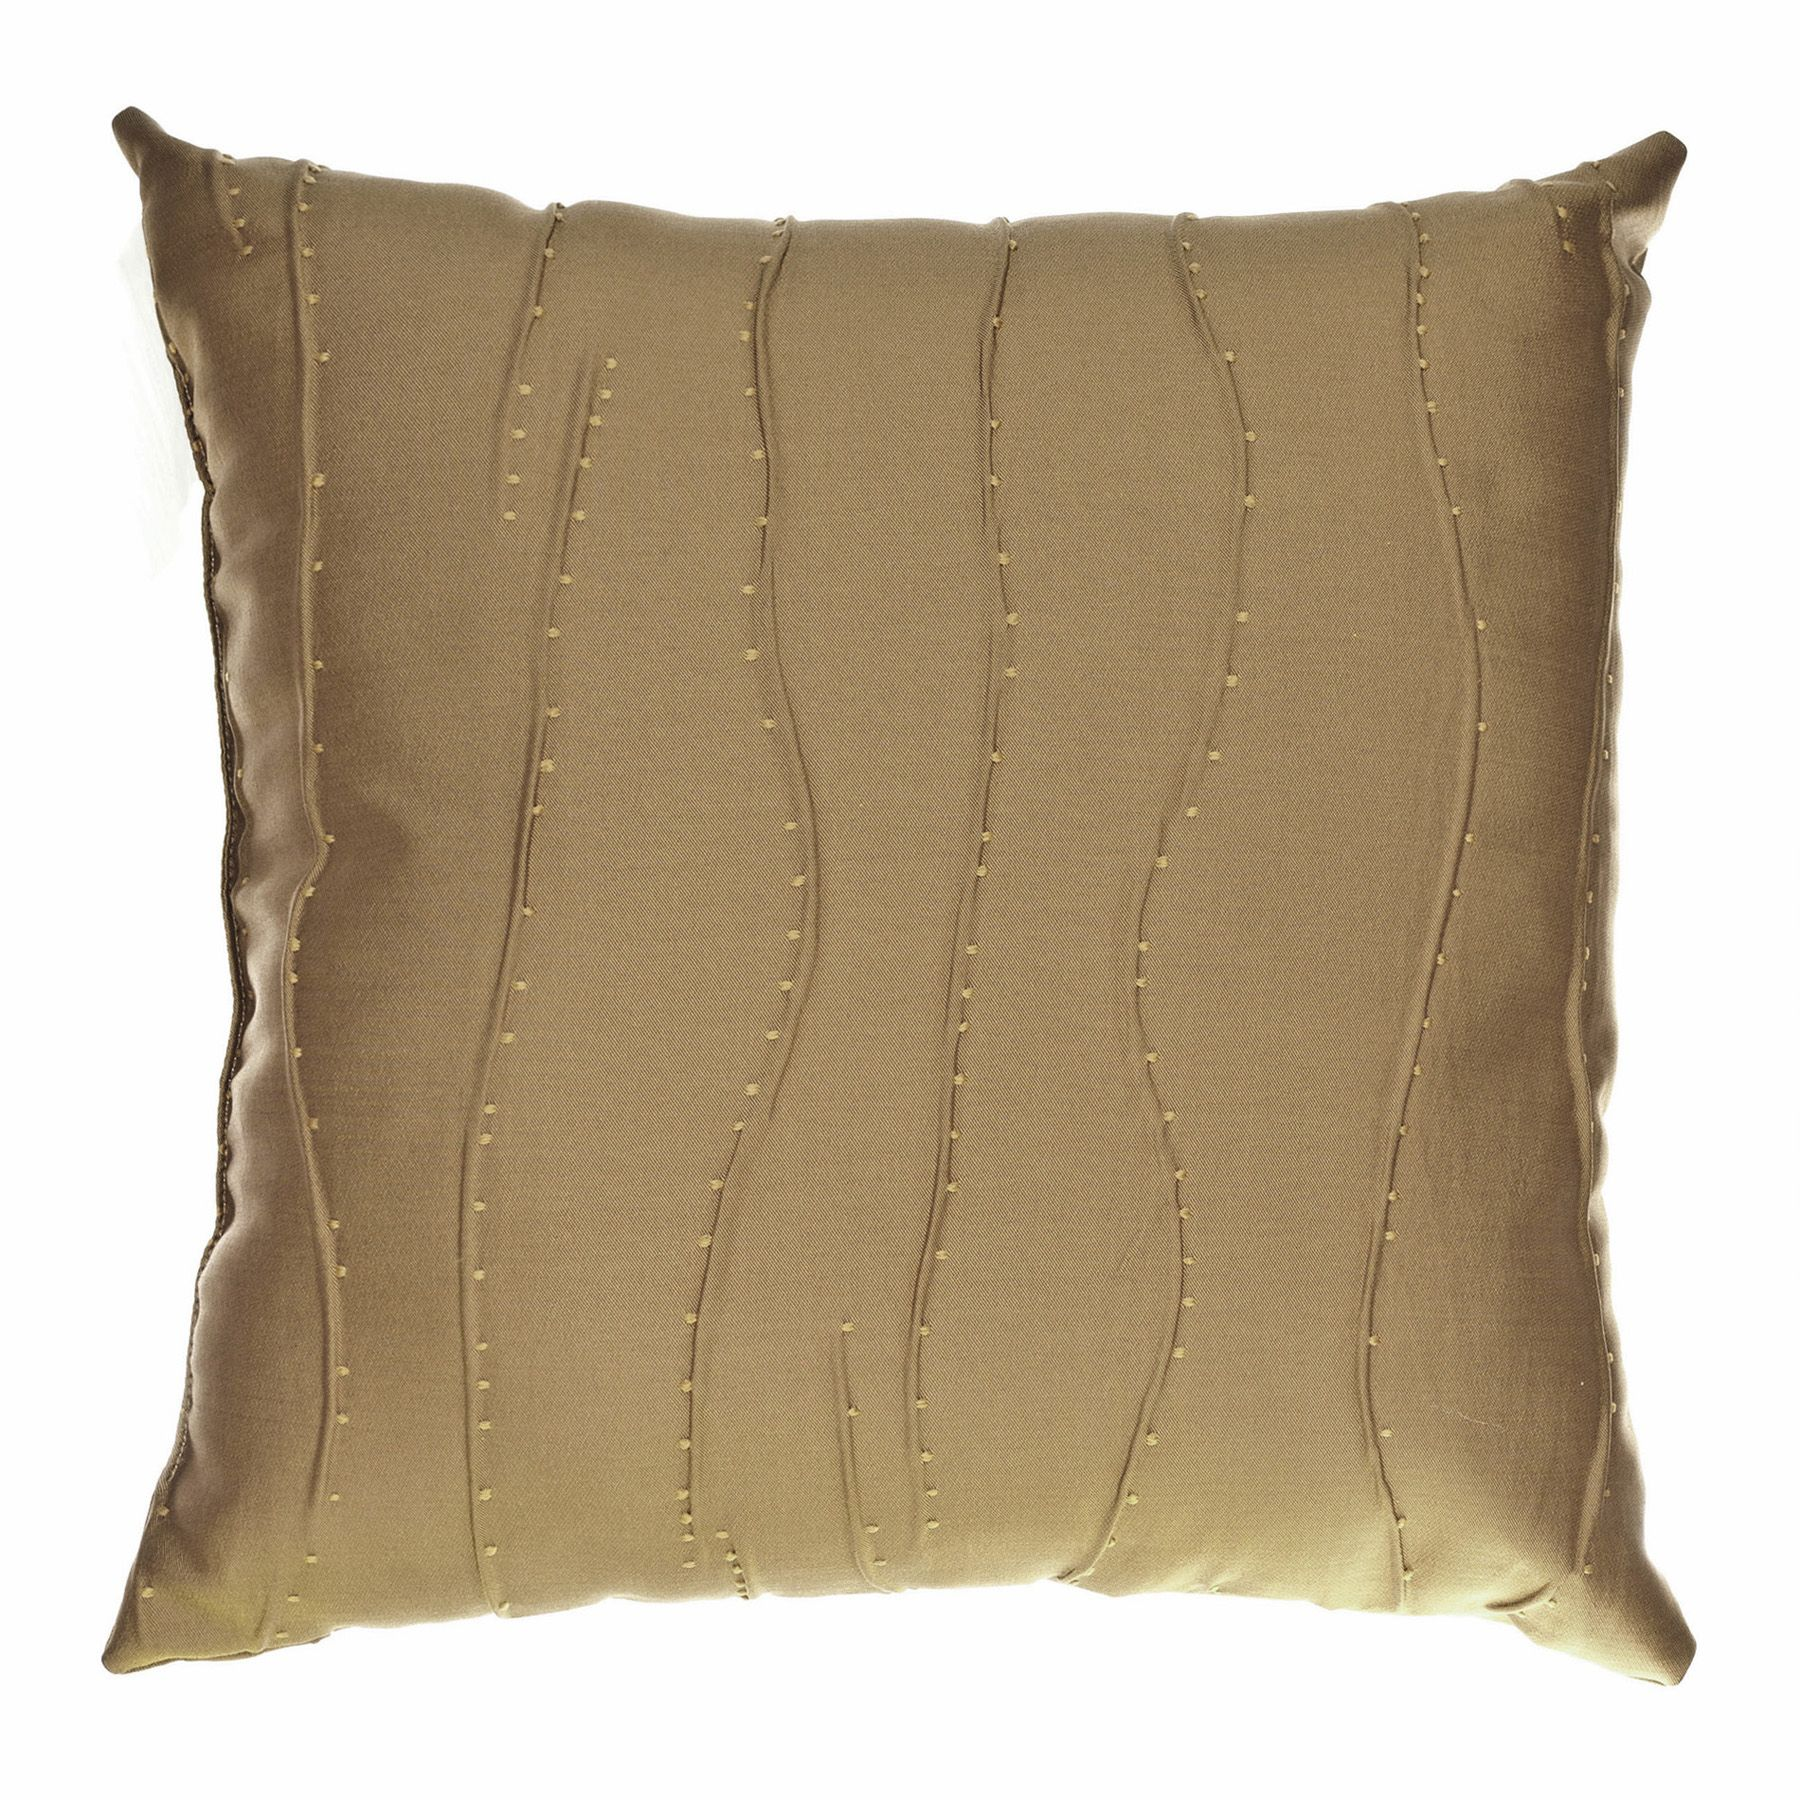 Decorative Pillows Kmart : 18x18 Decorative Pillow Kmart.com